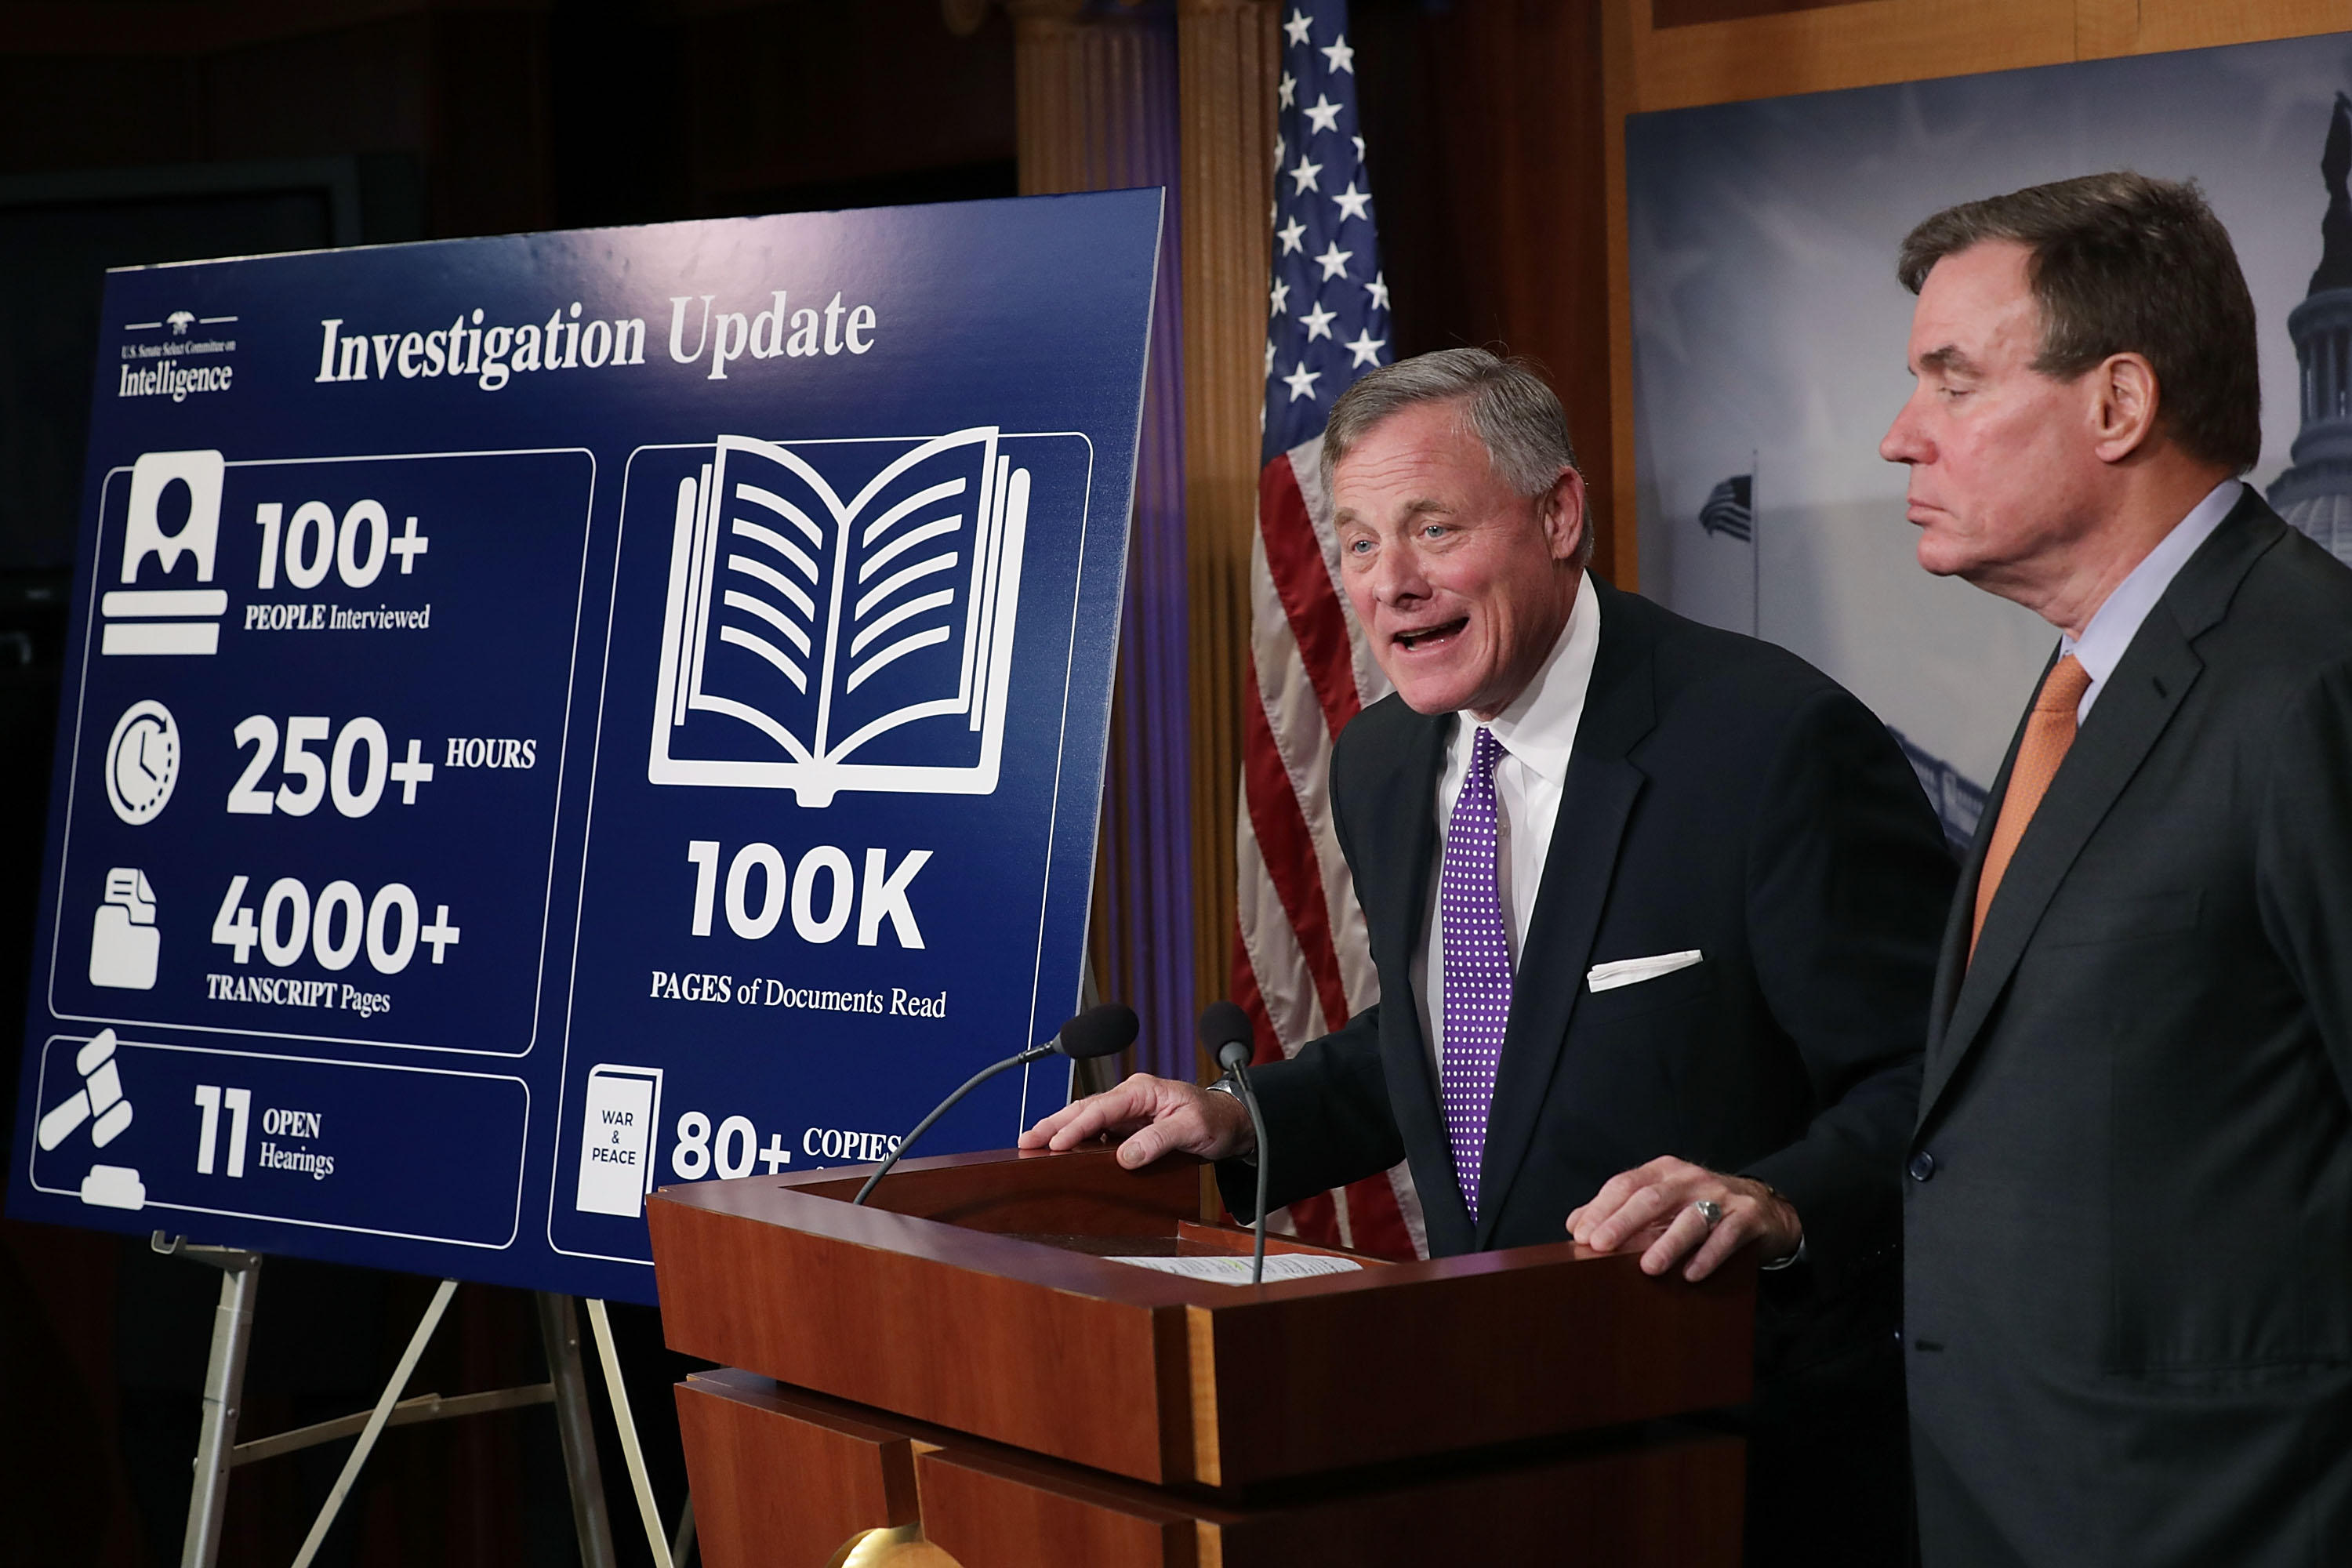 Sens. Richard Burr (left) and Mark Warner deliver an update on an inquiry into Russian interference in the 2016 presidential election.